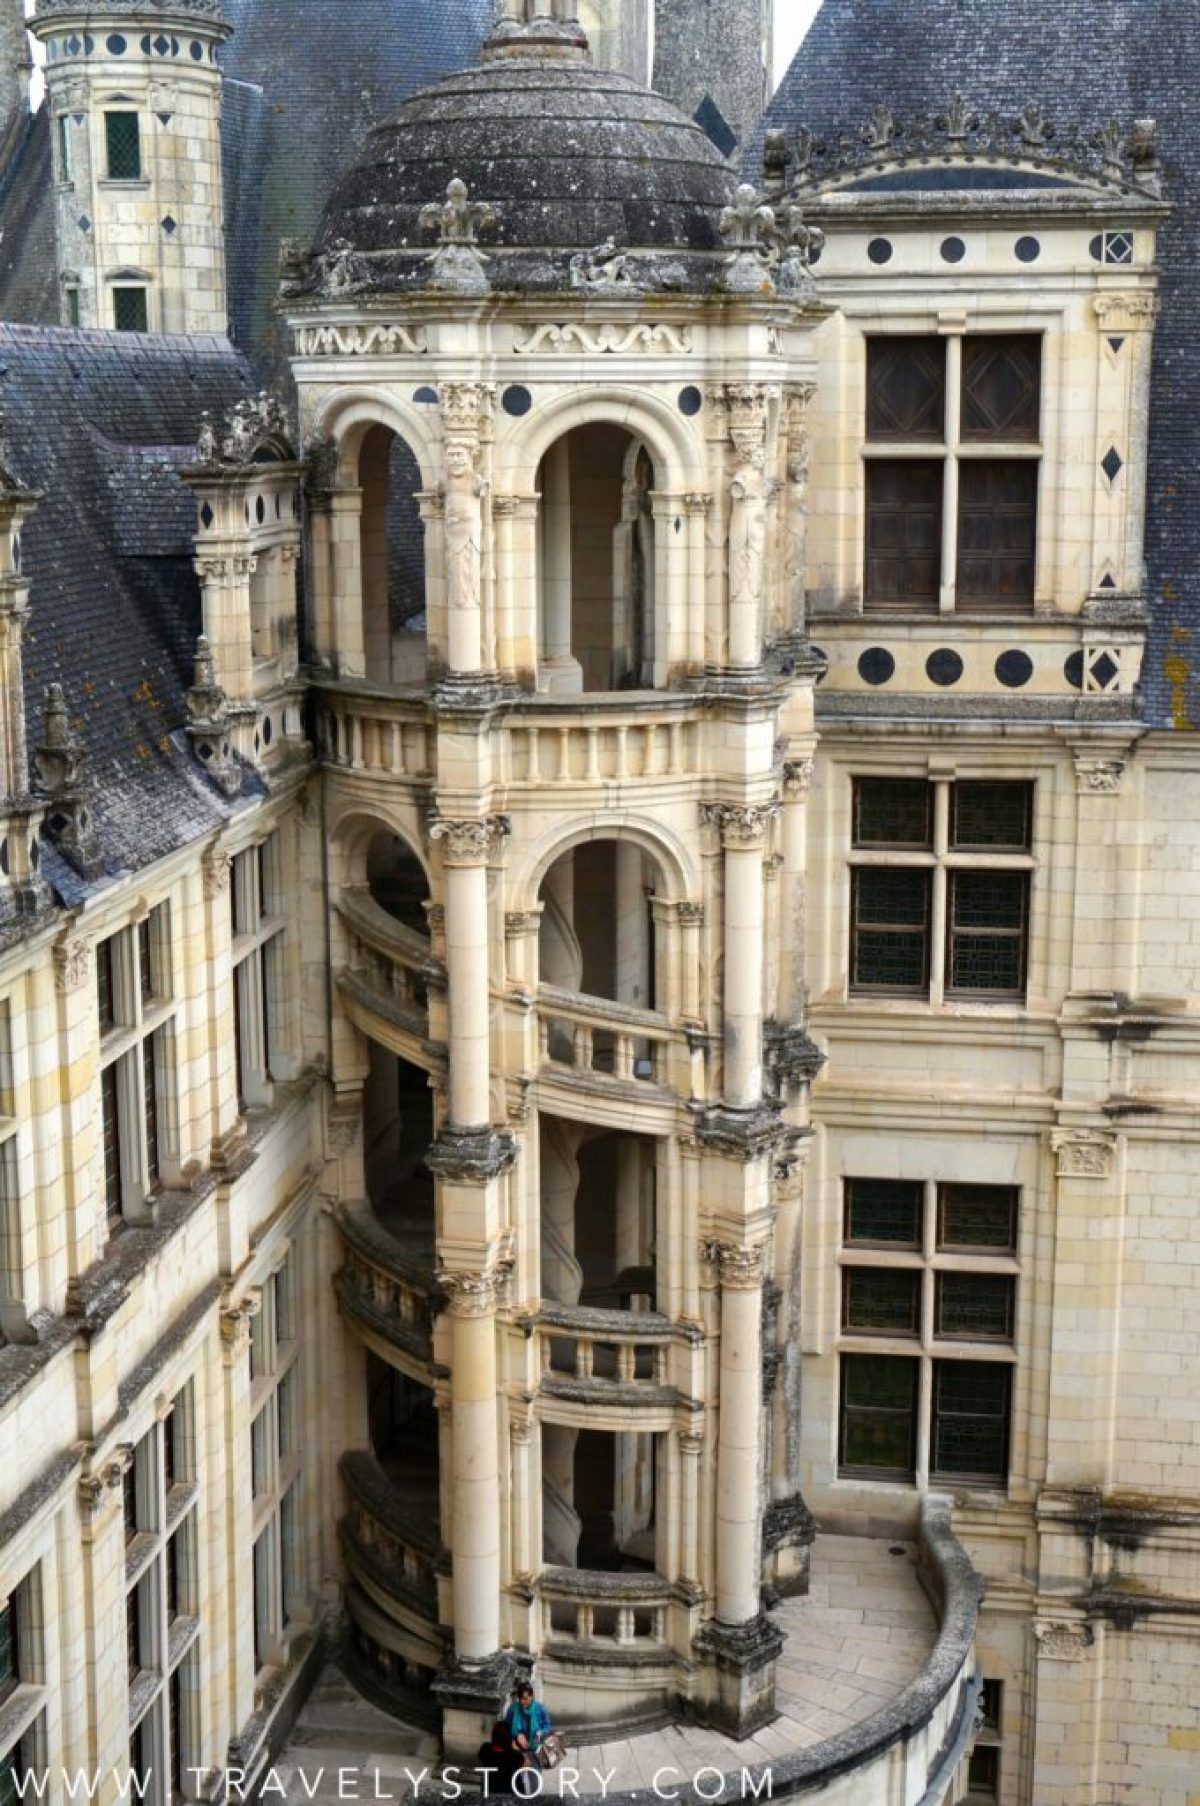 travely-story-chateaux-loire-13